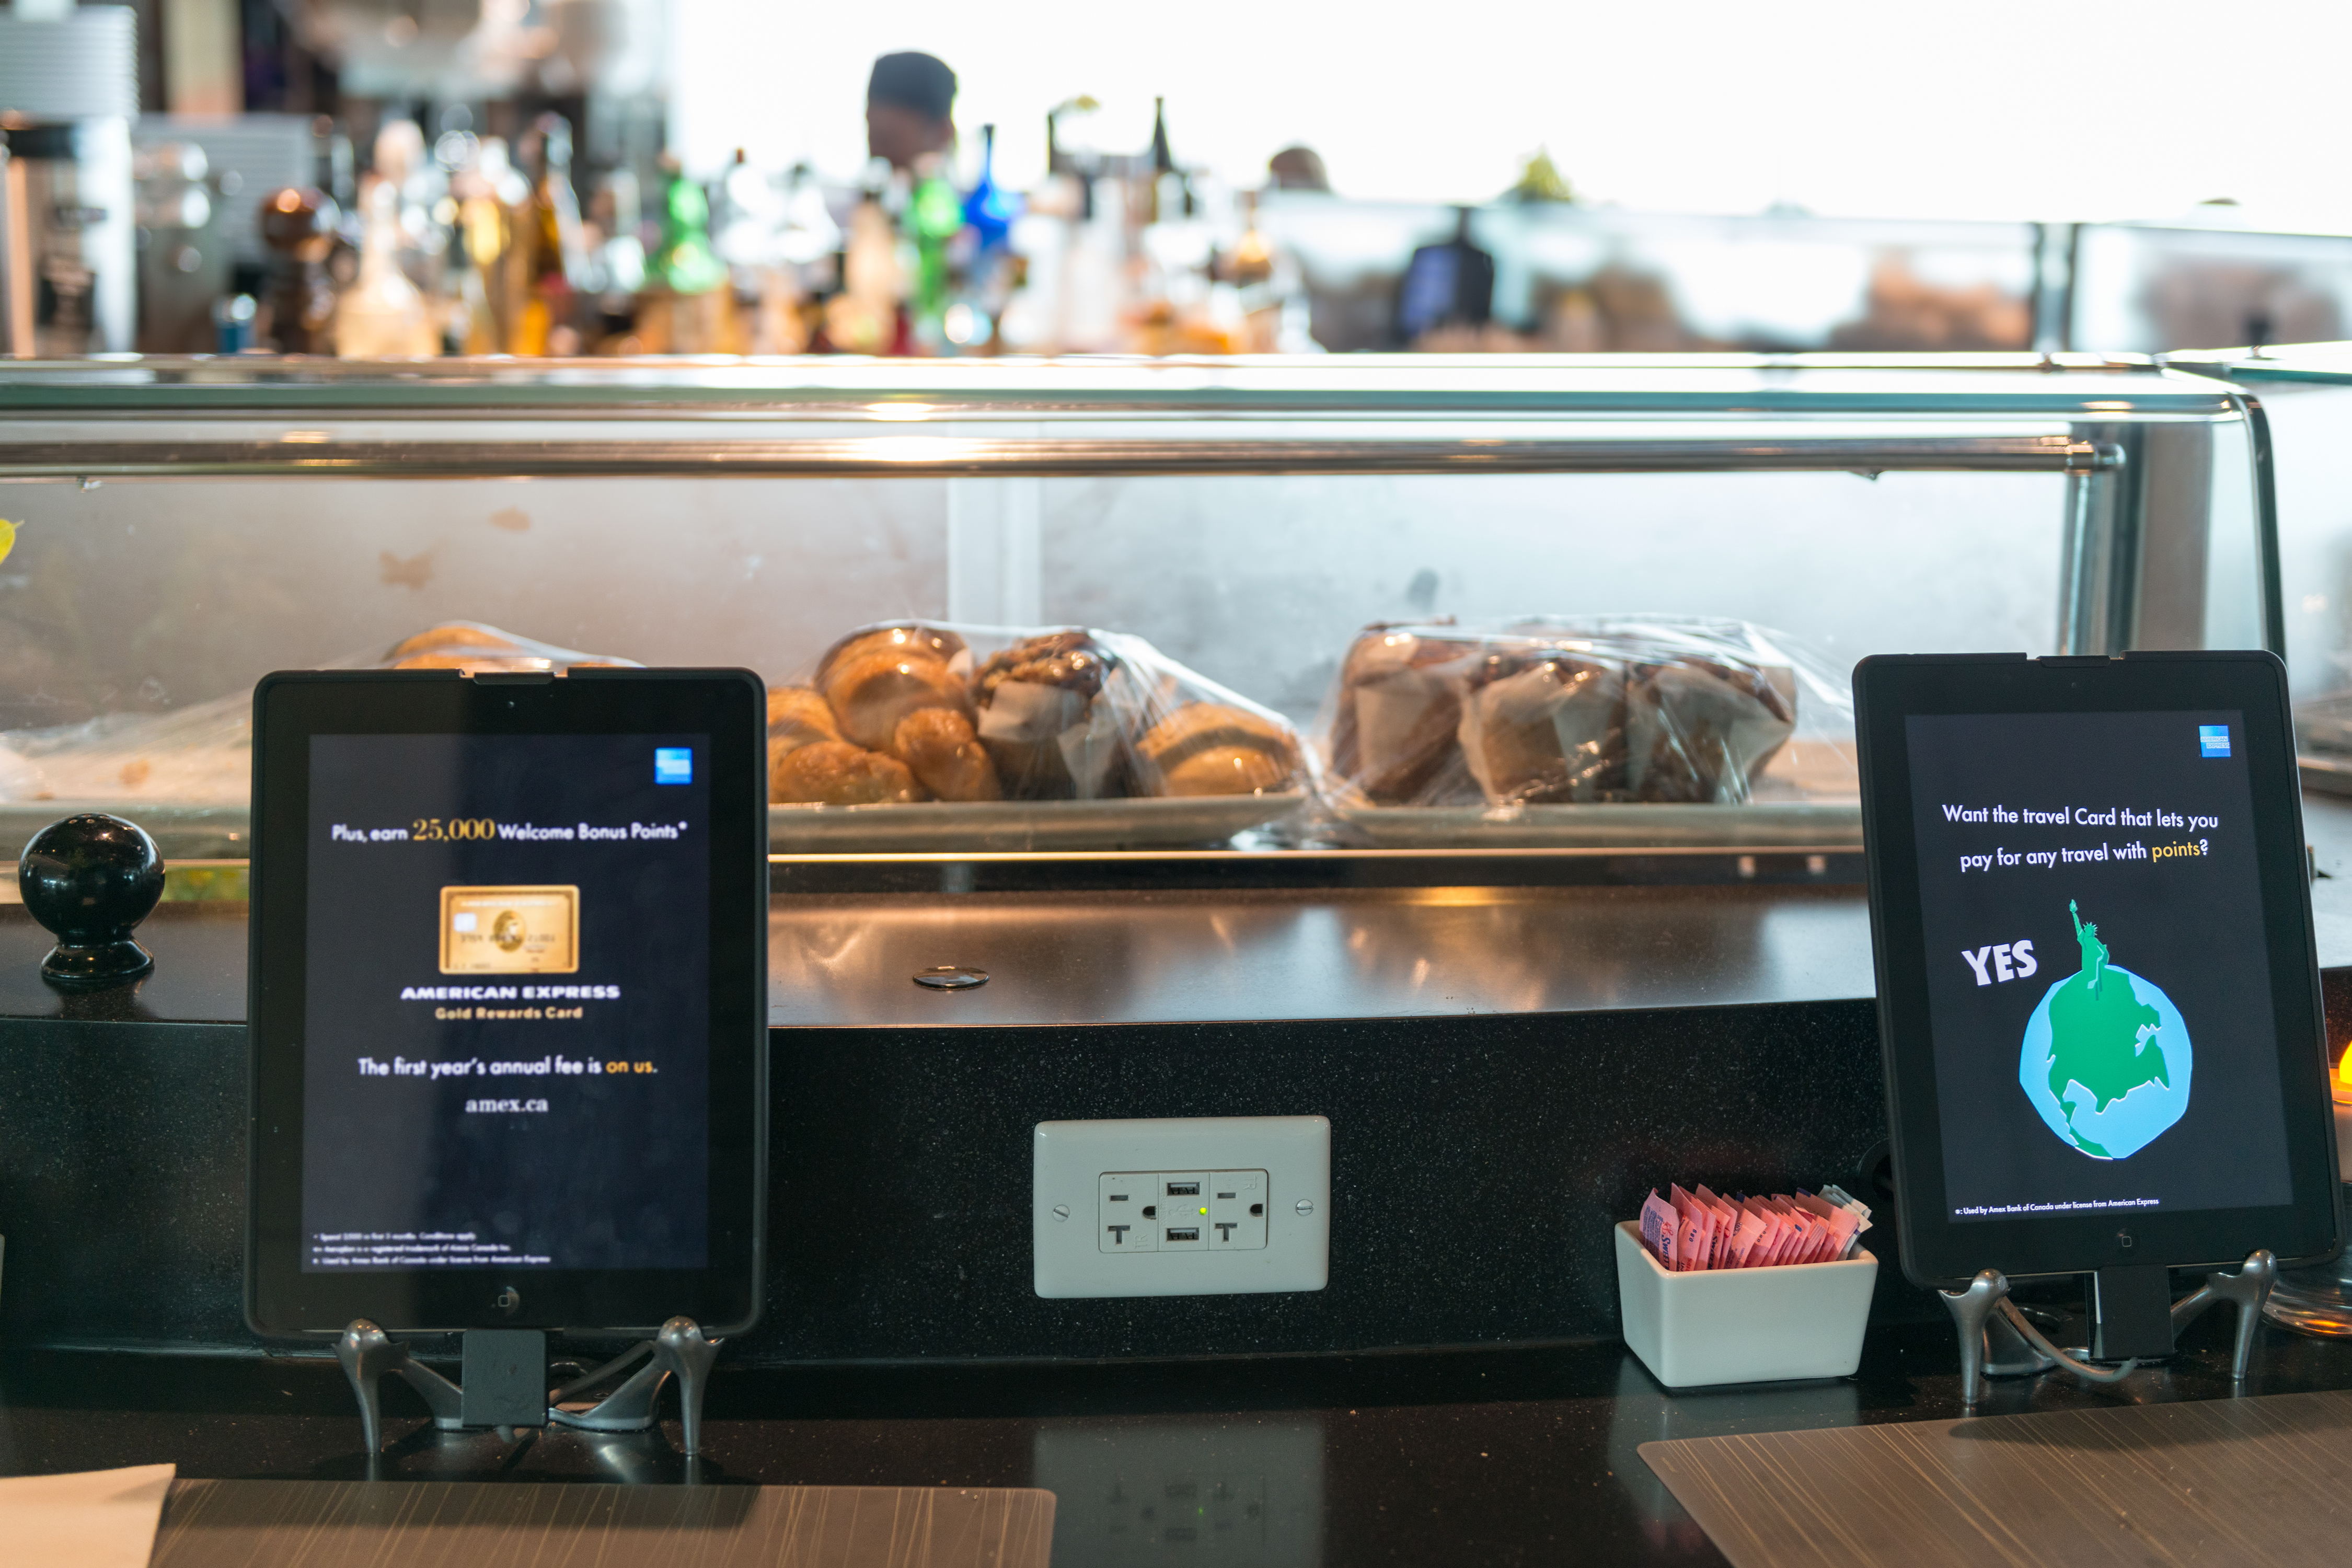 Restaurants are starting to use digital technology for self serving regarding the customer seeing their menu, ordering and paying their bill.